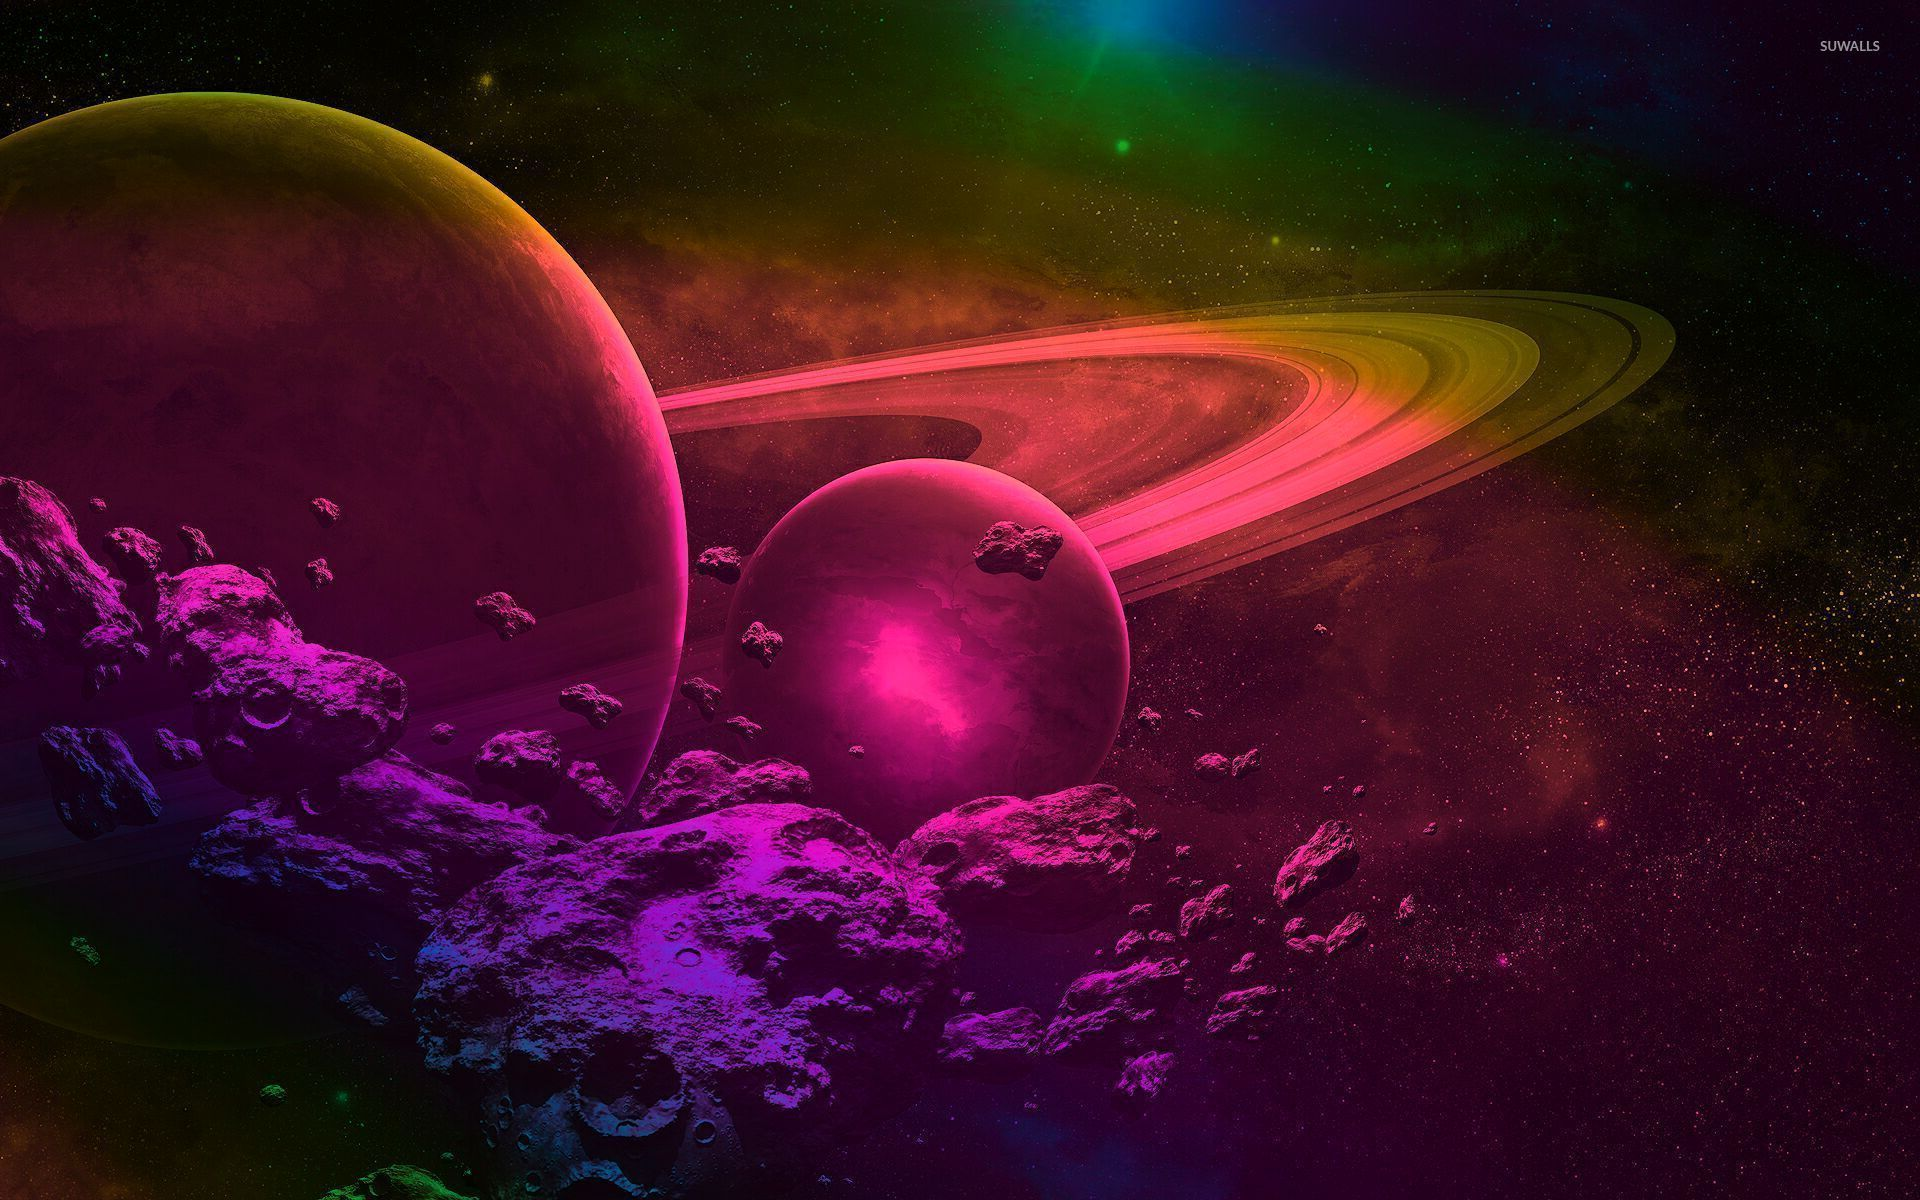 Pink universe wallpapers top free pink universe - Pink space wallpaper ...